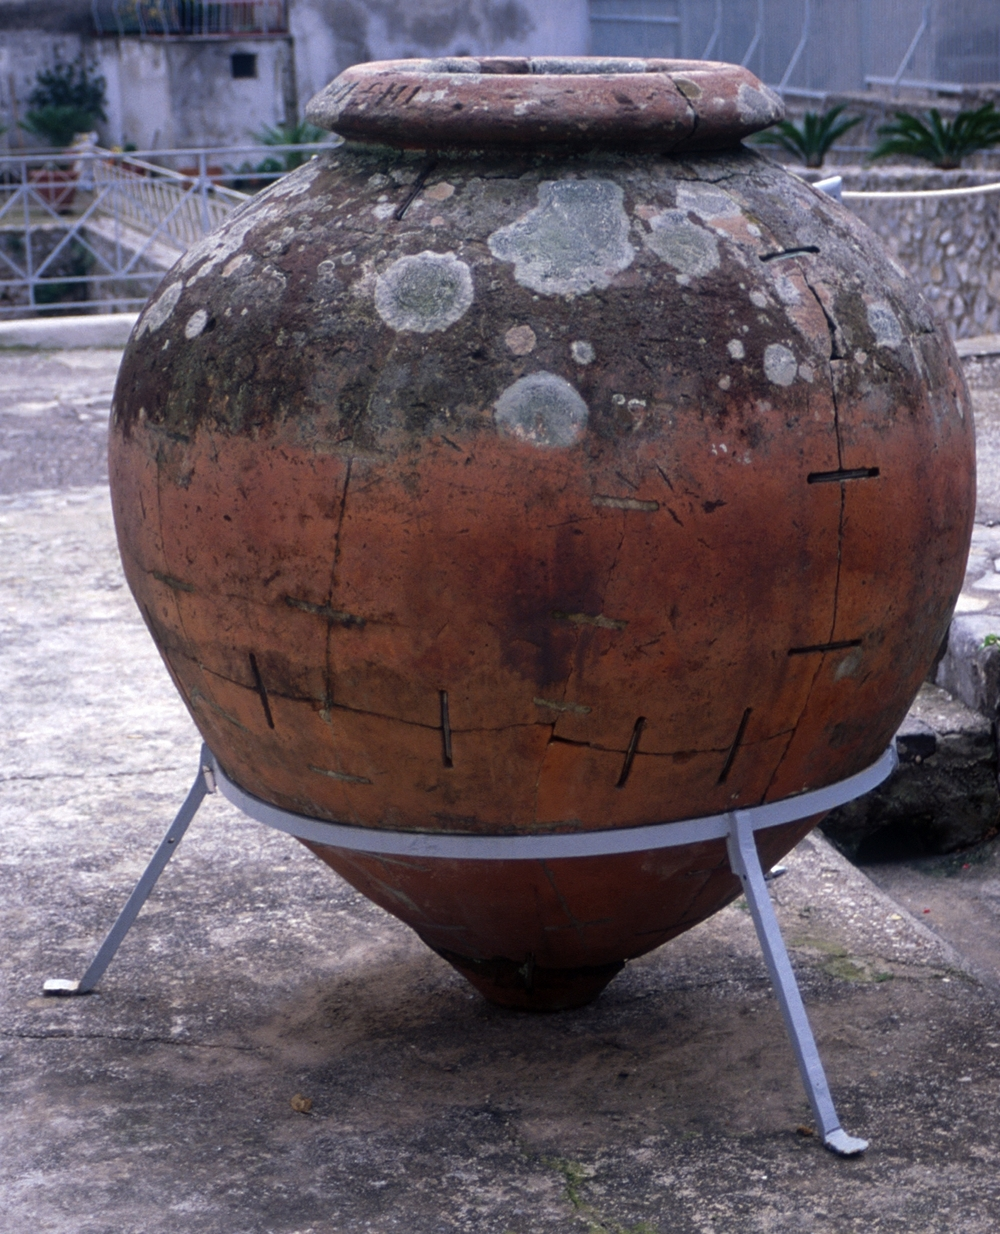 Example of a  dolium  with massive repairs carried out in antiquity - here, you can see the large metal staples that attach the broken pieces of this massive vessel. This example is from the Villa Minori in Italy.  Photo credit Tyler Bell via WikiMedia Commons.